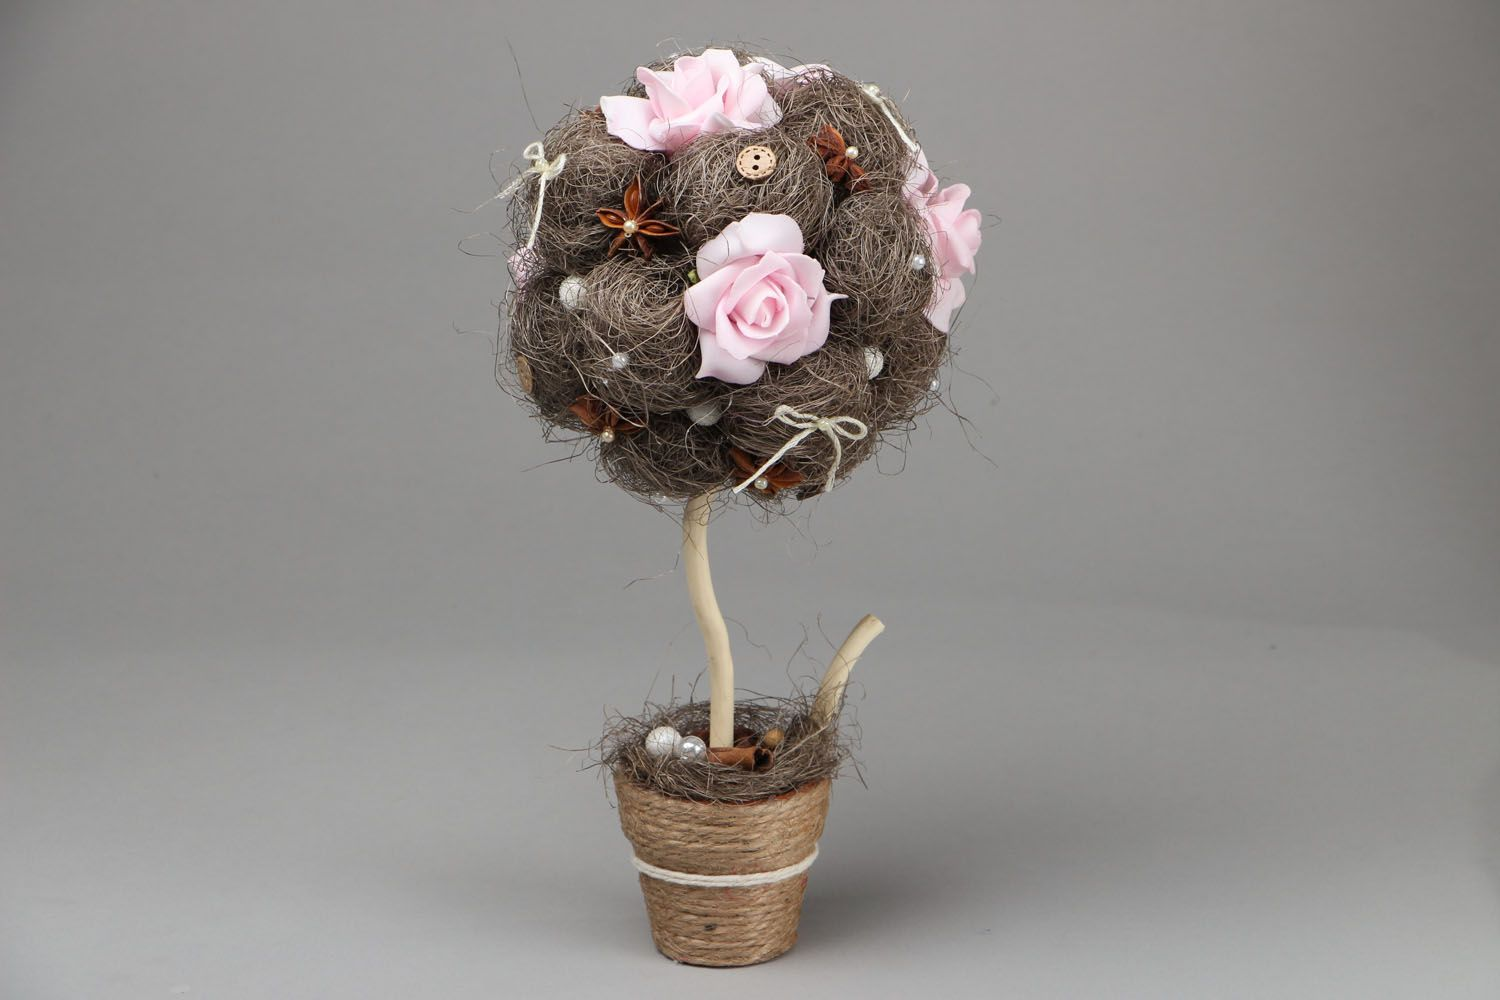 Homemade topiary Rose and Anise photo 1